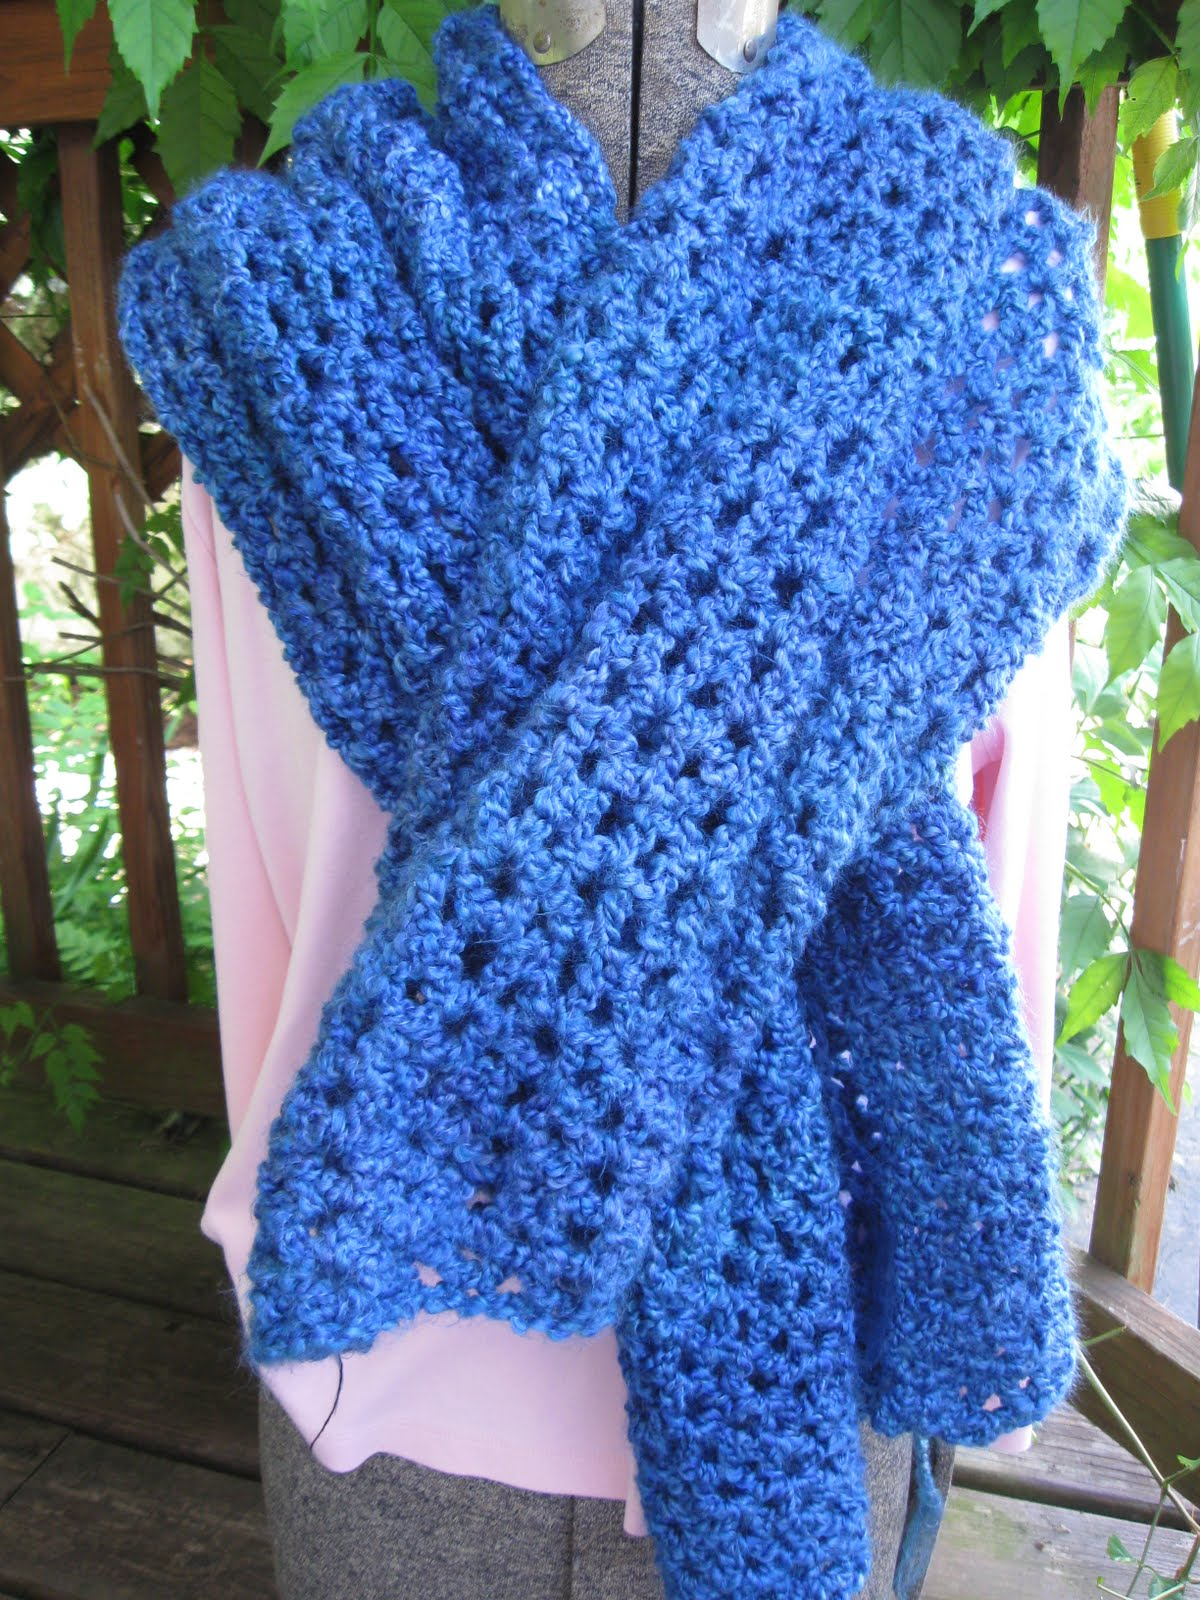 Crochet Knot Stitch Shawl : Celtic Knot Crochet: Gifts Edition - Hooked on Crochet Class Projects